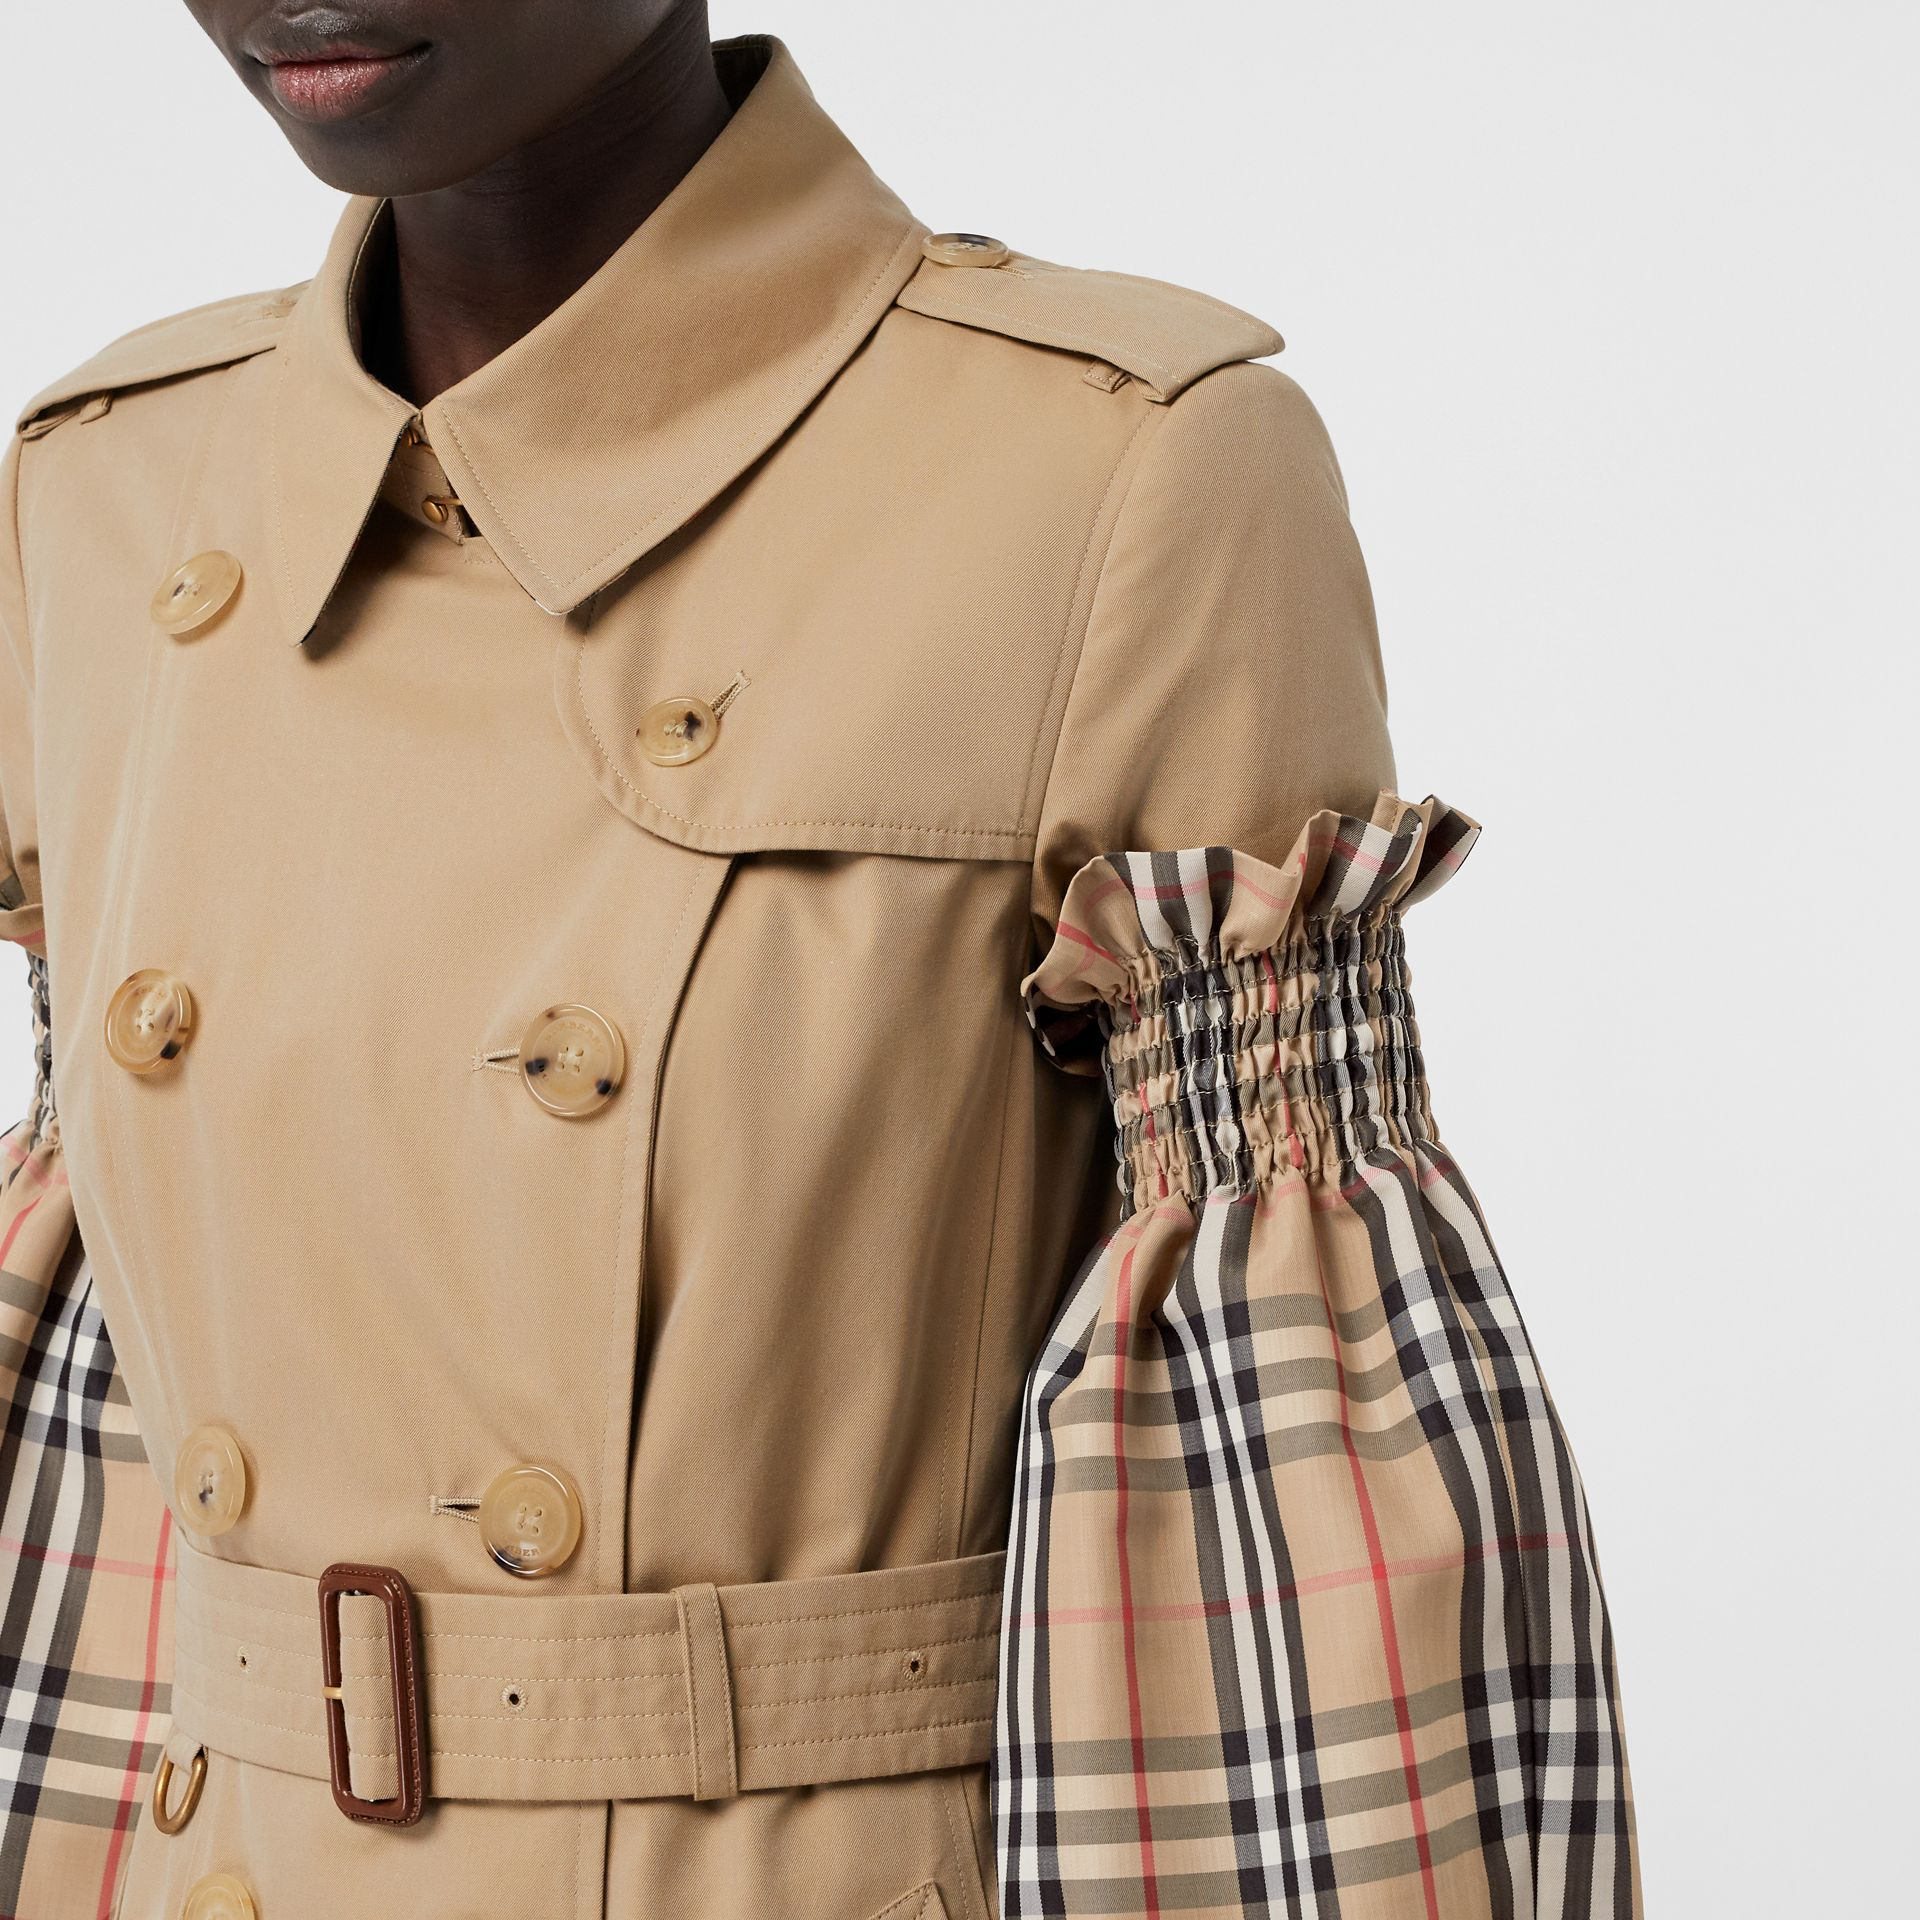 Vintage Check Puff Sleeves in Archive Beige - Women | Burberry Australia - gallery image 4